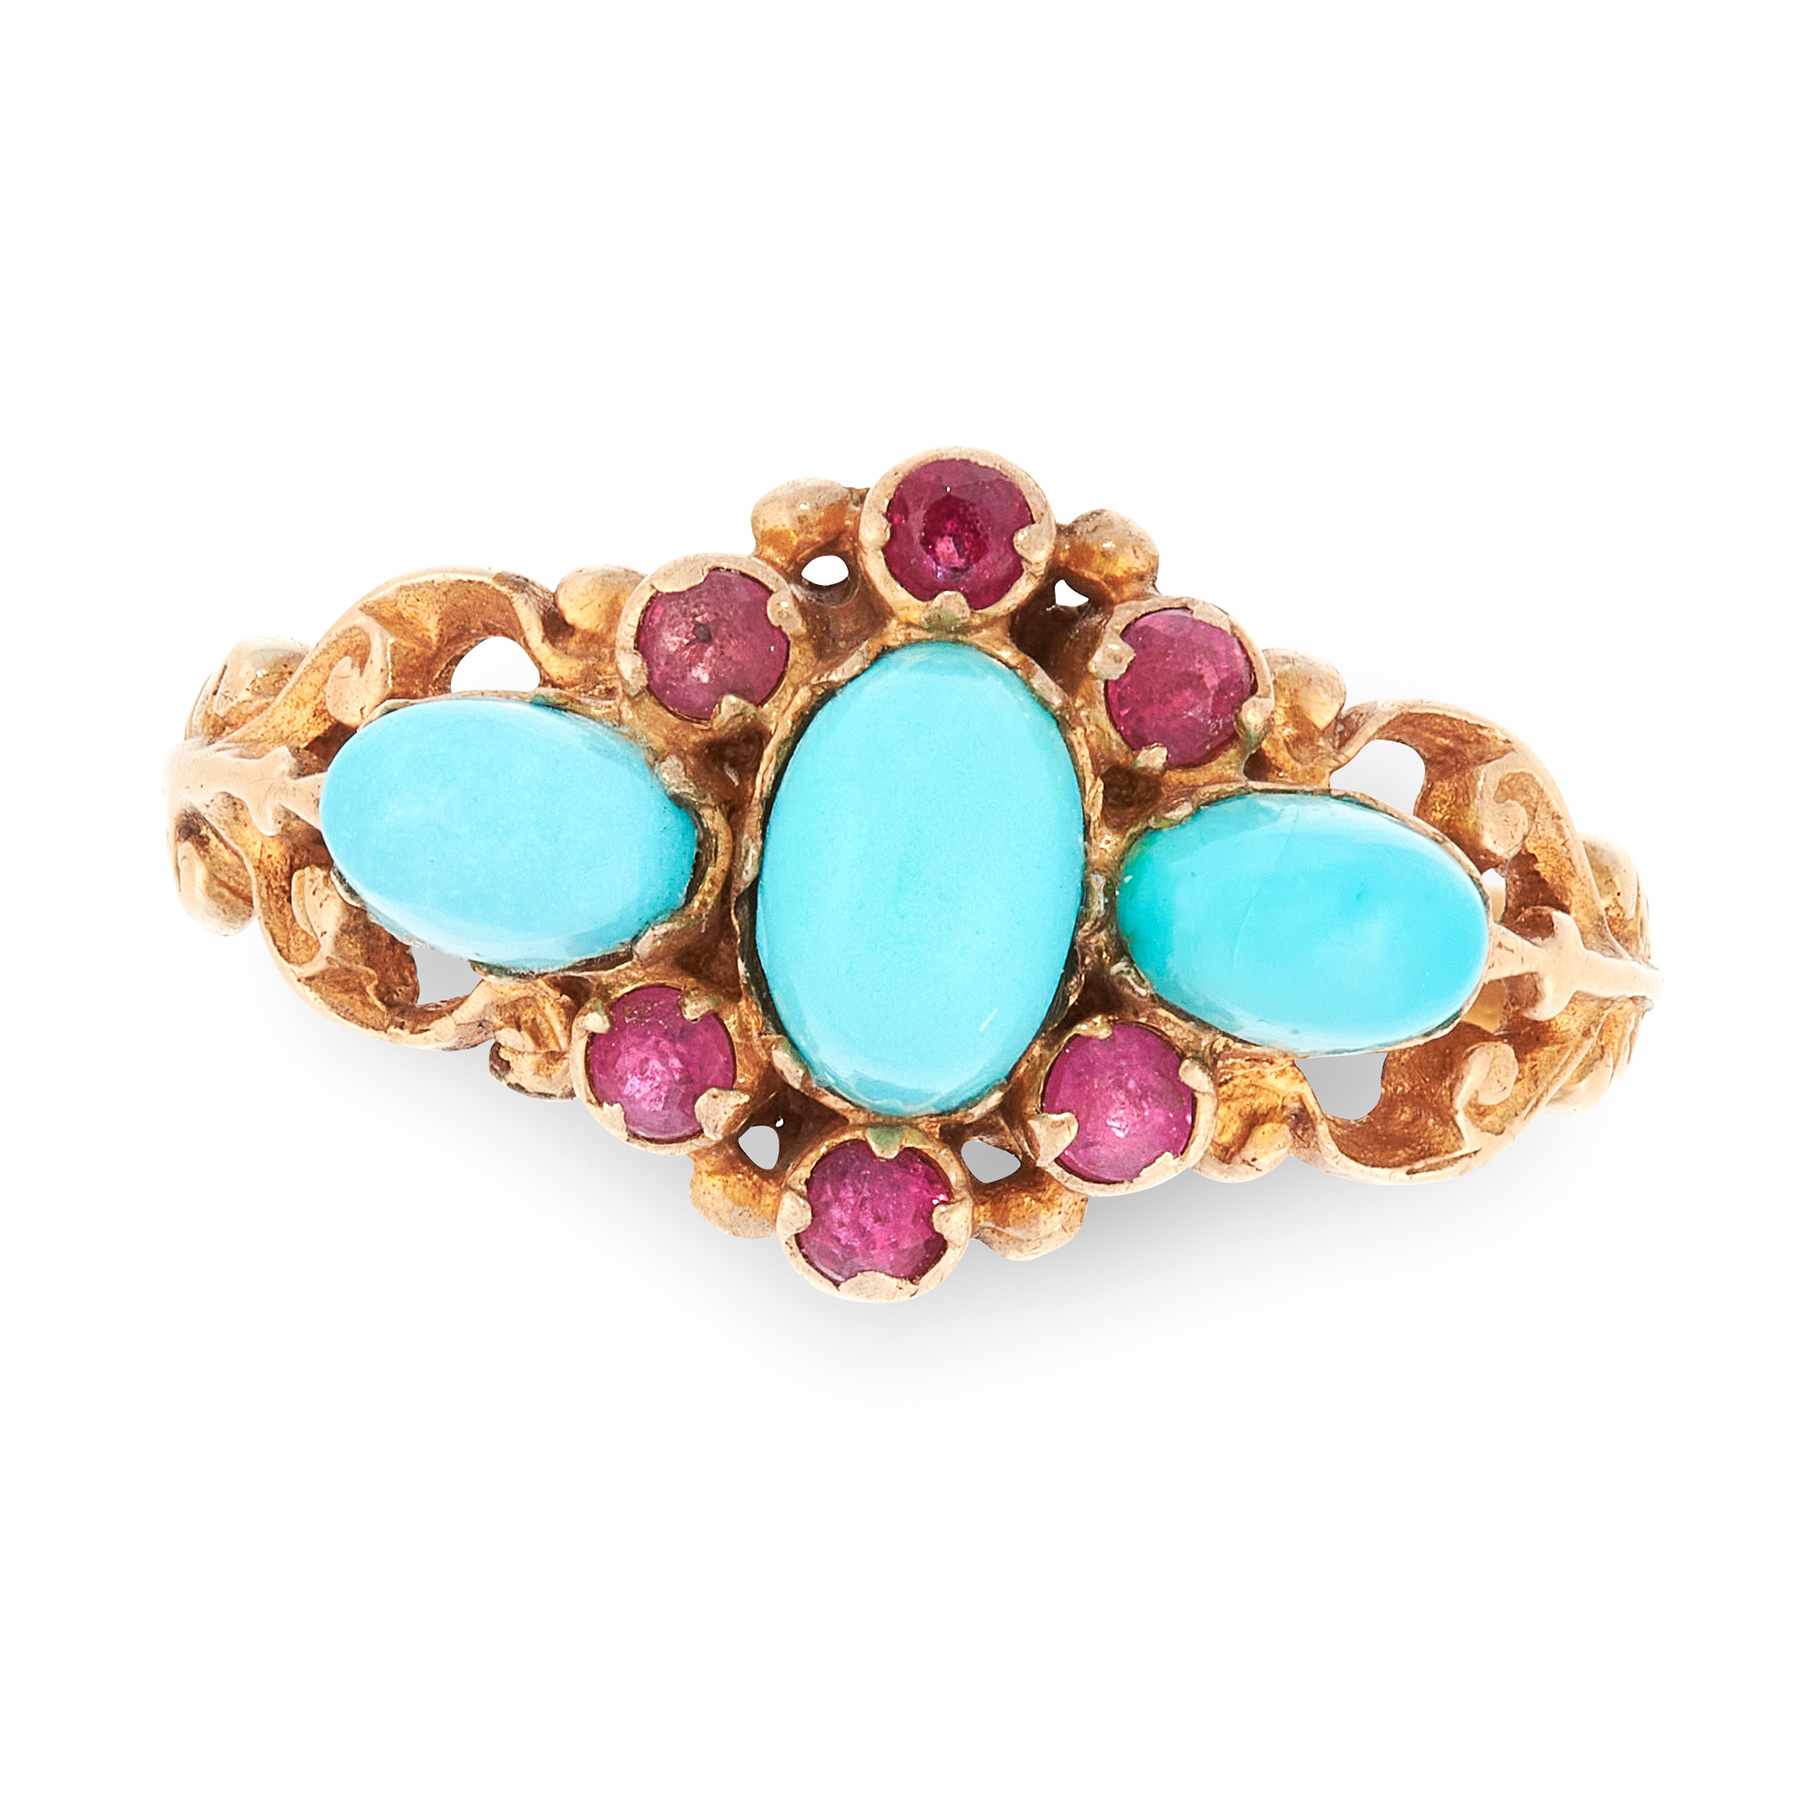 A TURQUOISE AND RUBY RING in yellow gold, set with a central cabochon turquoise in a border of round